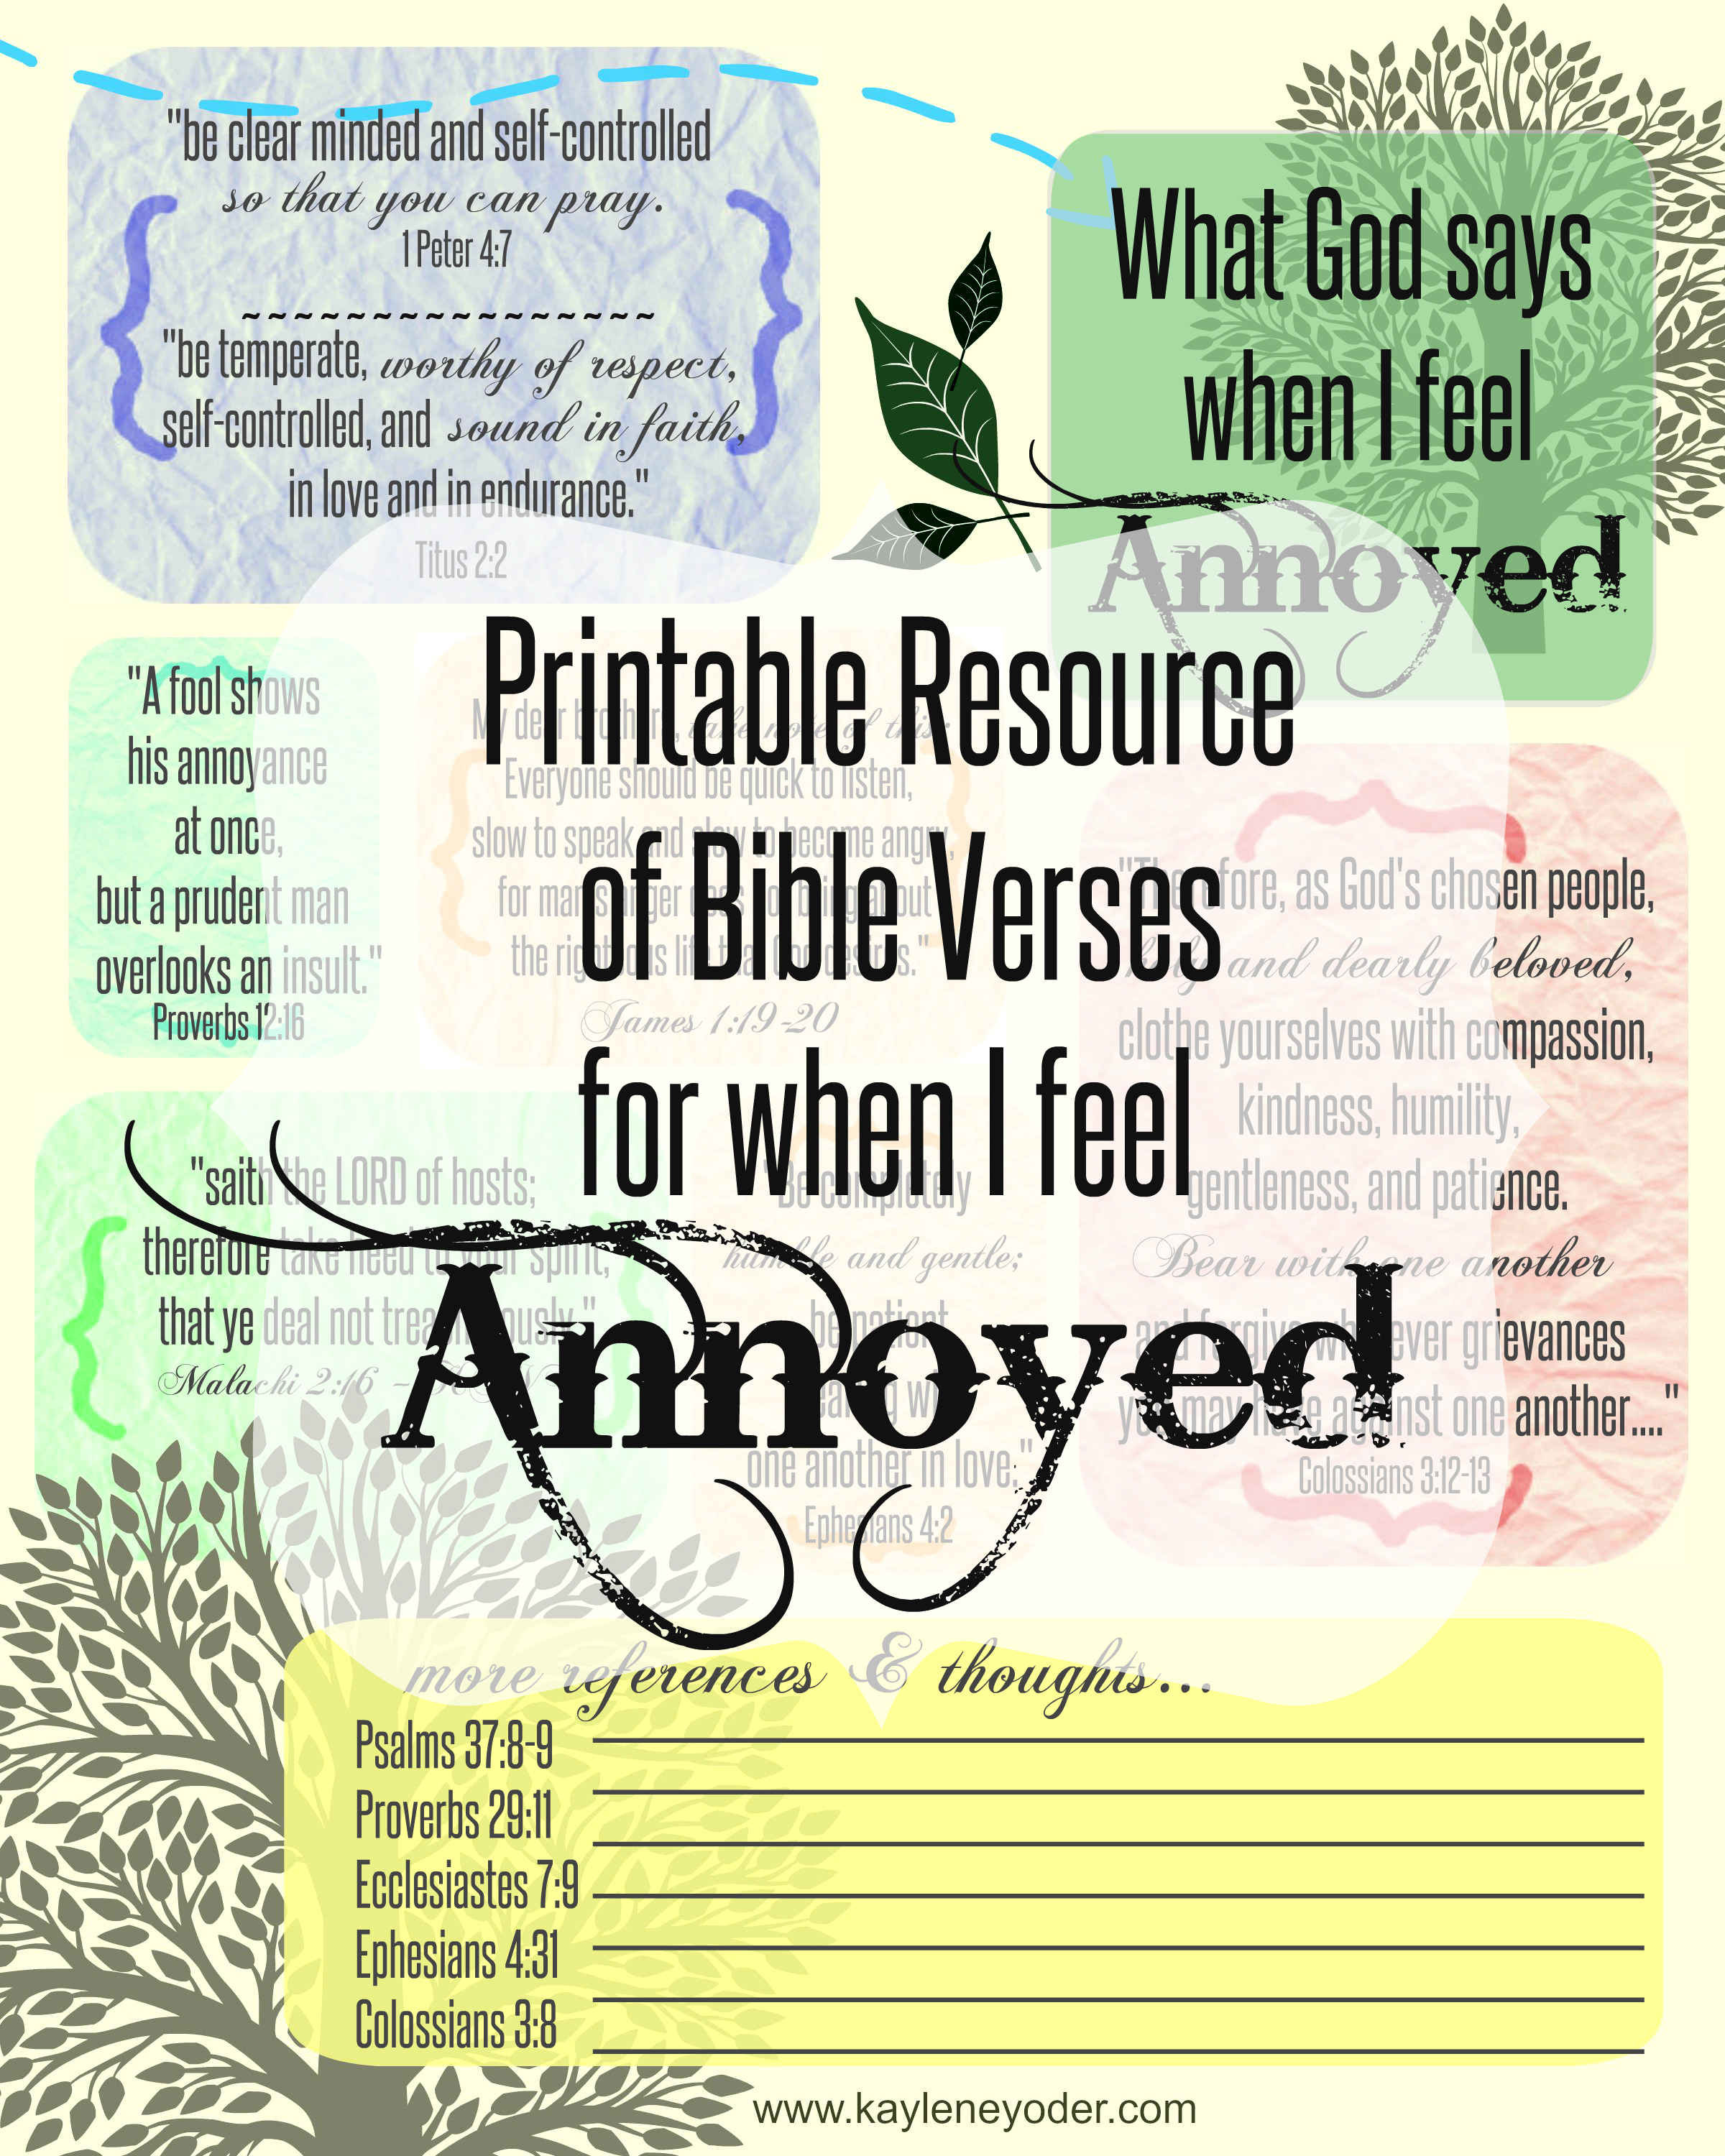 Free Printable resource of Bible verses for when I feel annoyed